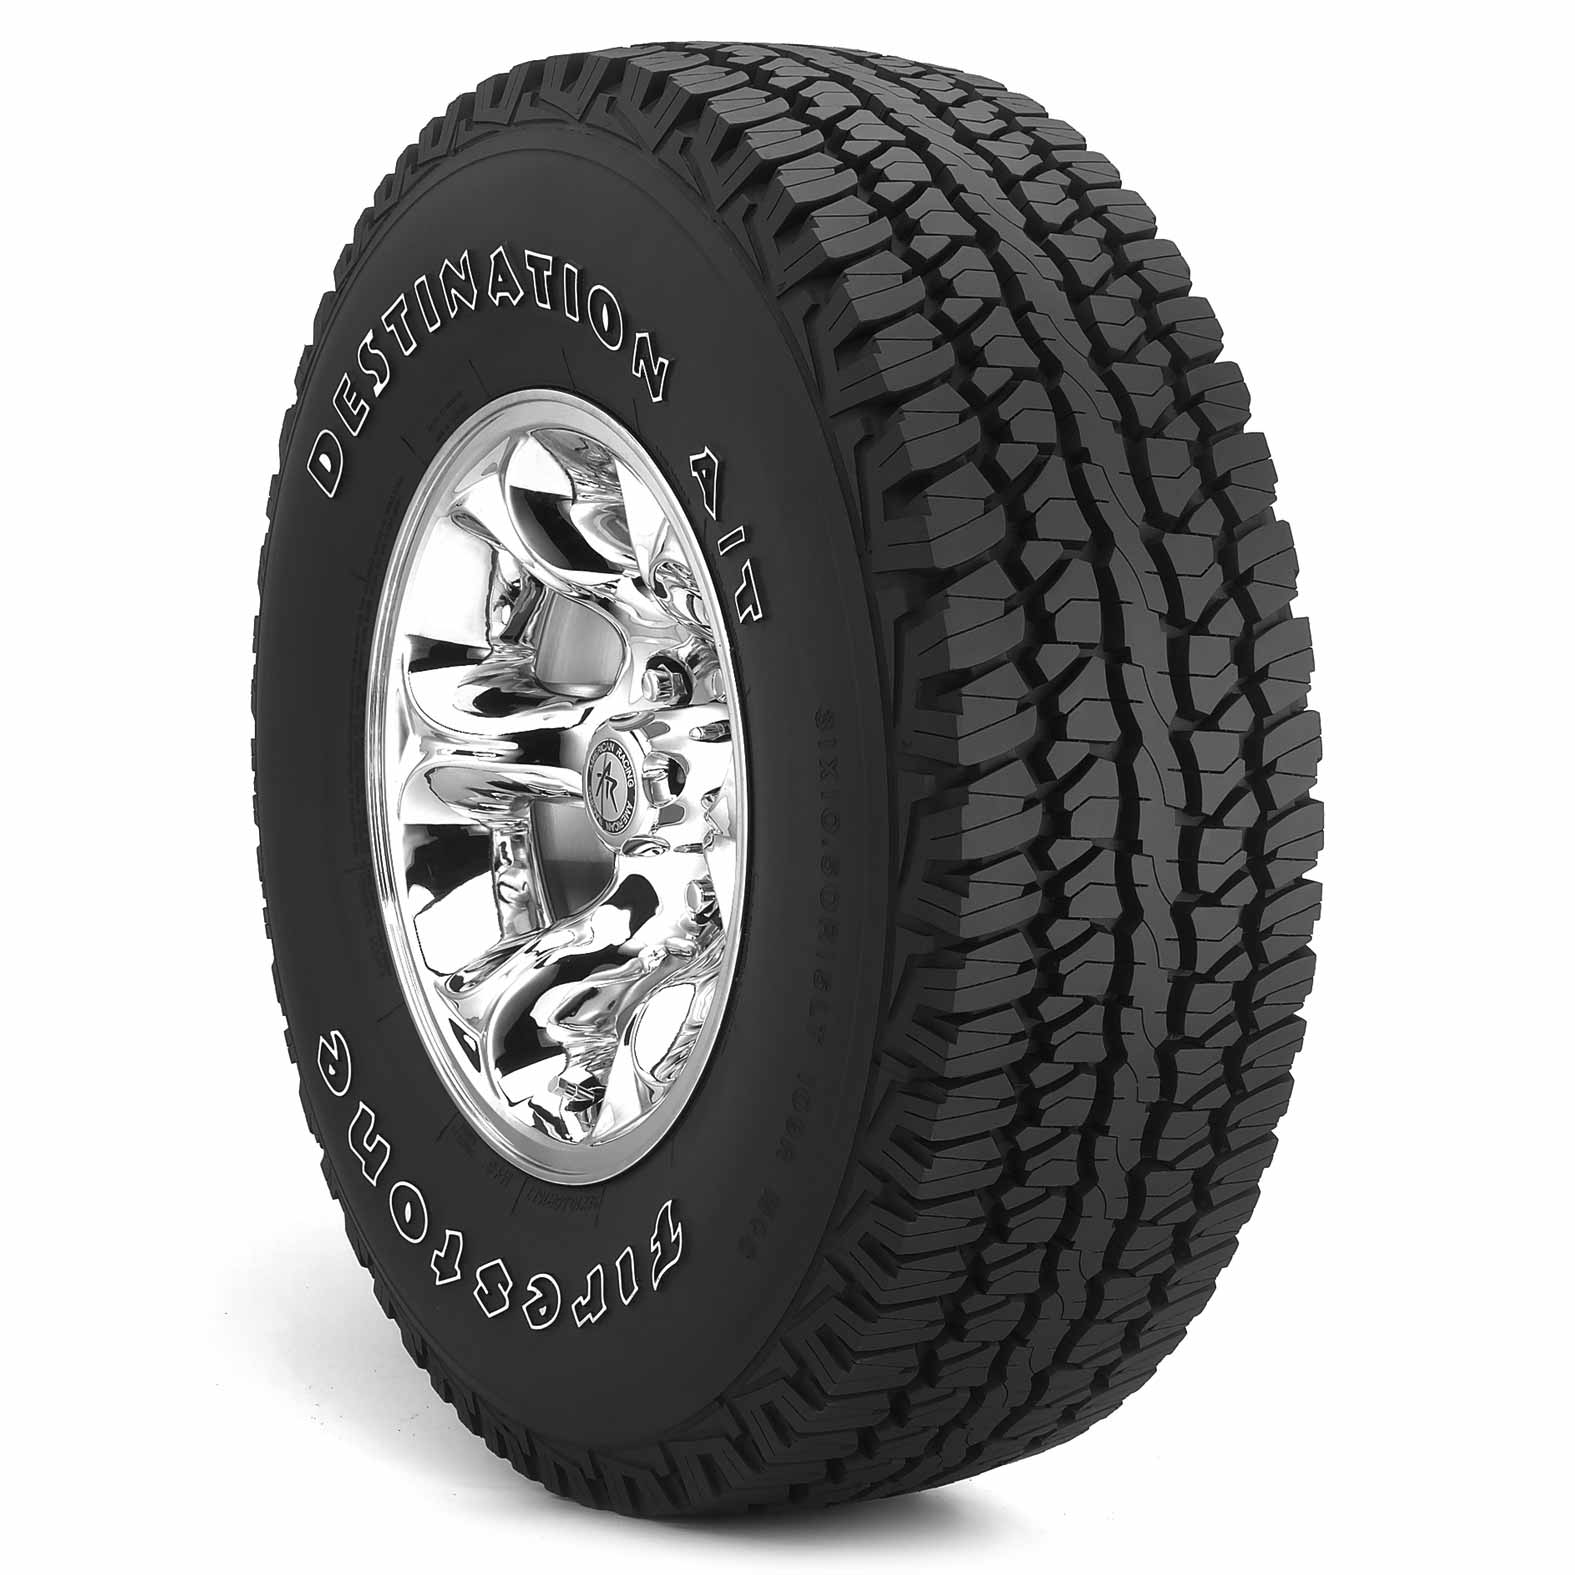 Firestone Destination A/T tire - angle